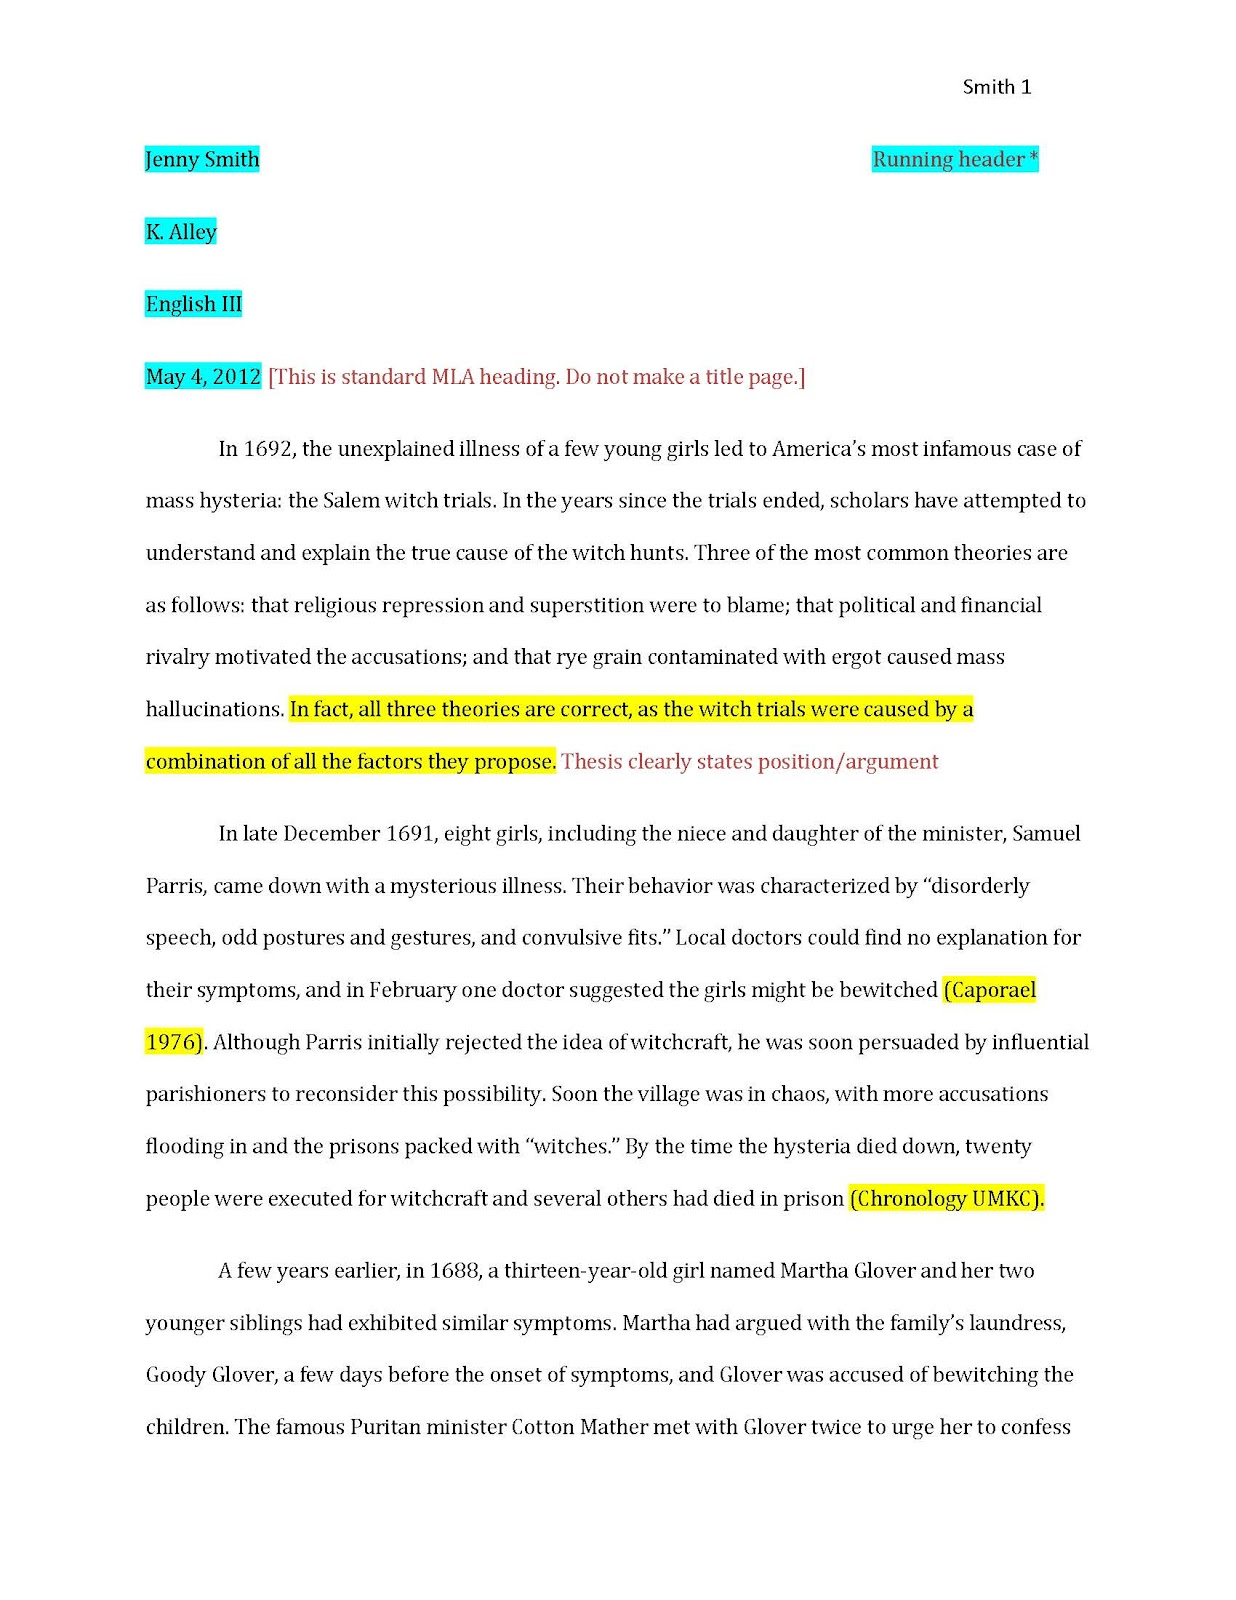 Paper Essay Writing Citation In Essay Citation In Essay Gxart In Essay Citation Purdue Owl In  Text Citation Online Good Topics For Narrative Essays also Unforgettable Moment Essay Apa Essay Citation Citation In Essay Citation In Essay Gxart In  University Level Essay